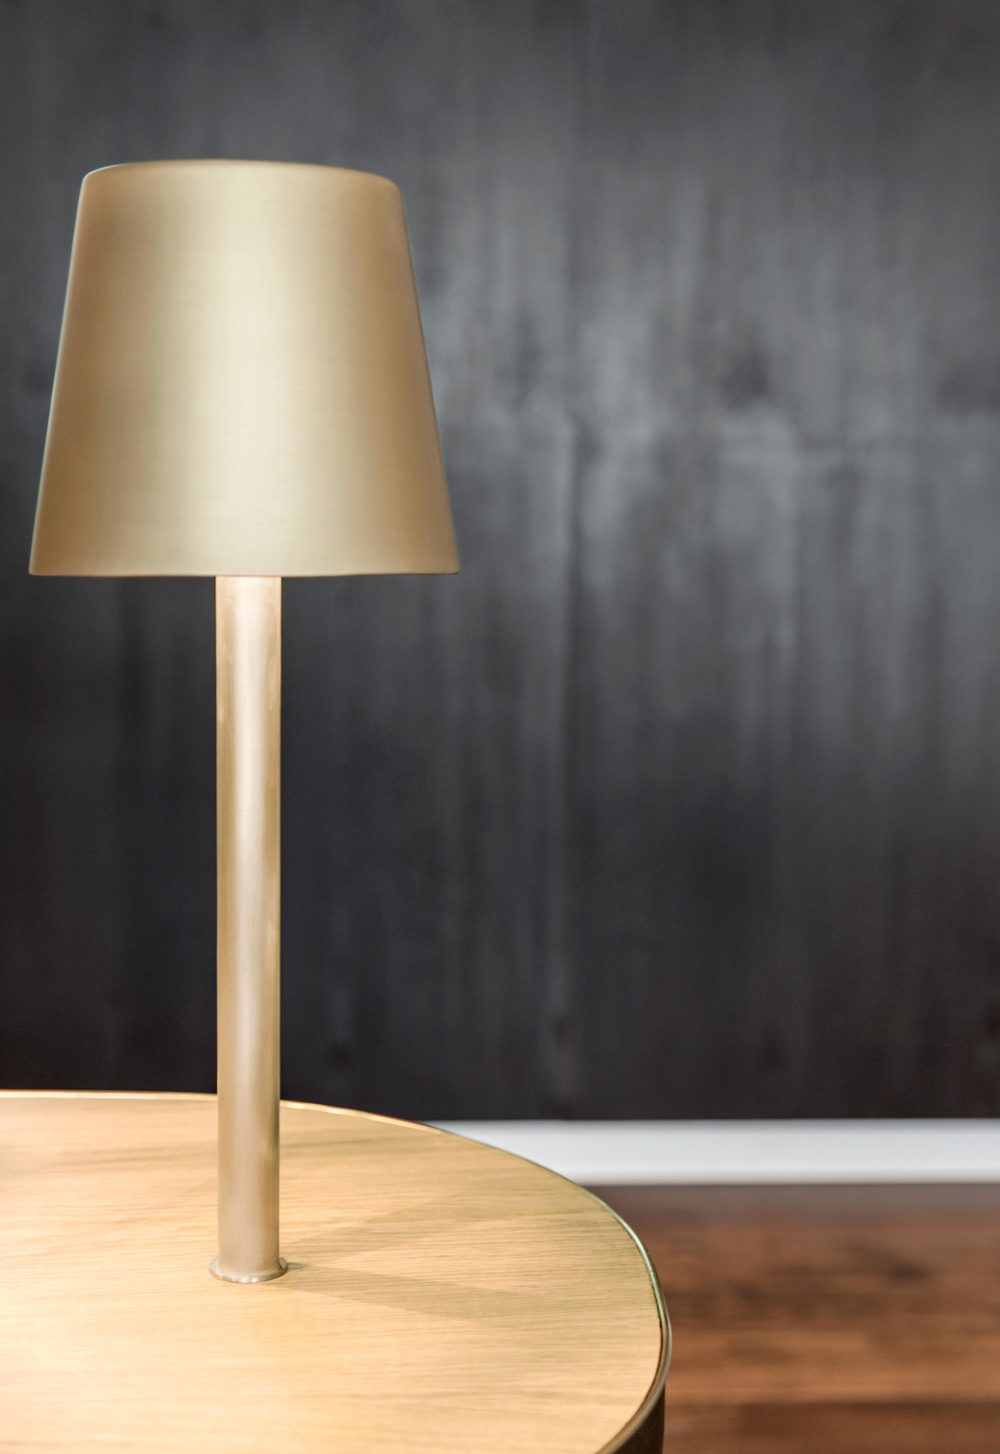 Brass table lamp designed by lighting and furniture designer Tom Dixon